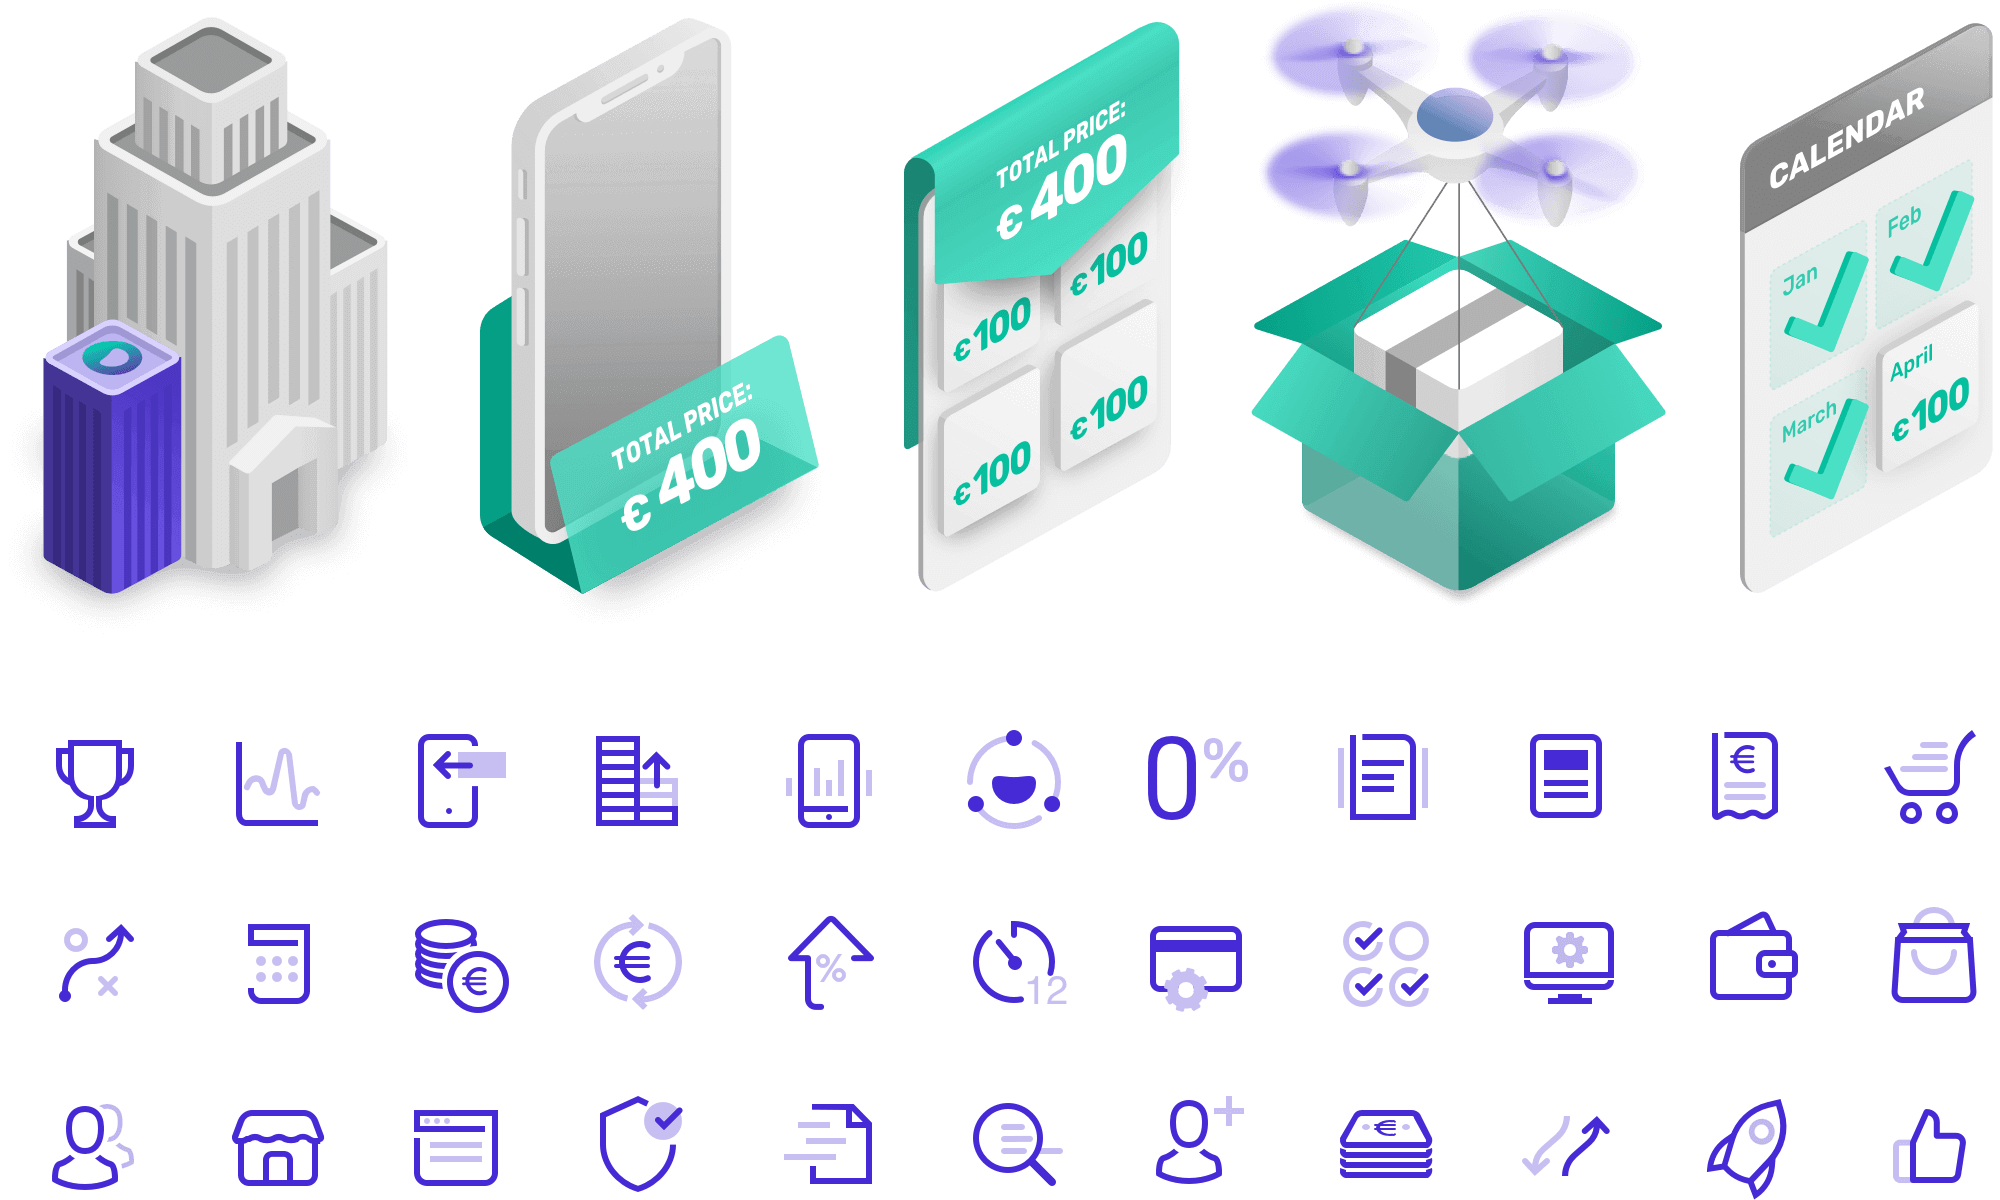 Isometric set of illustrations and icons created for Solfy website.